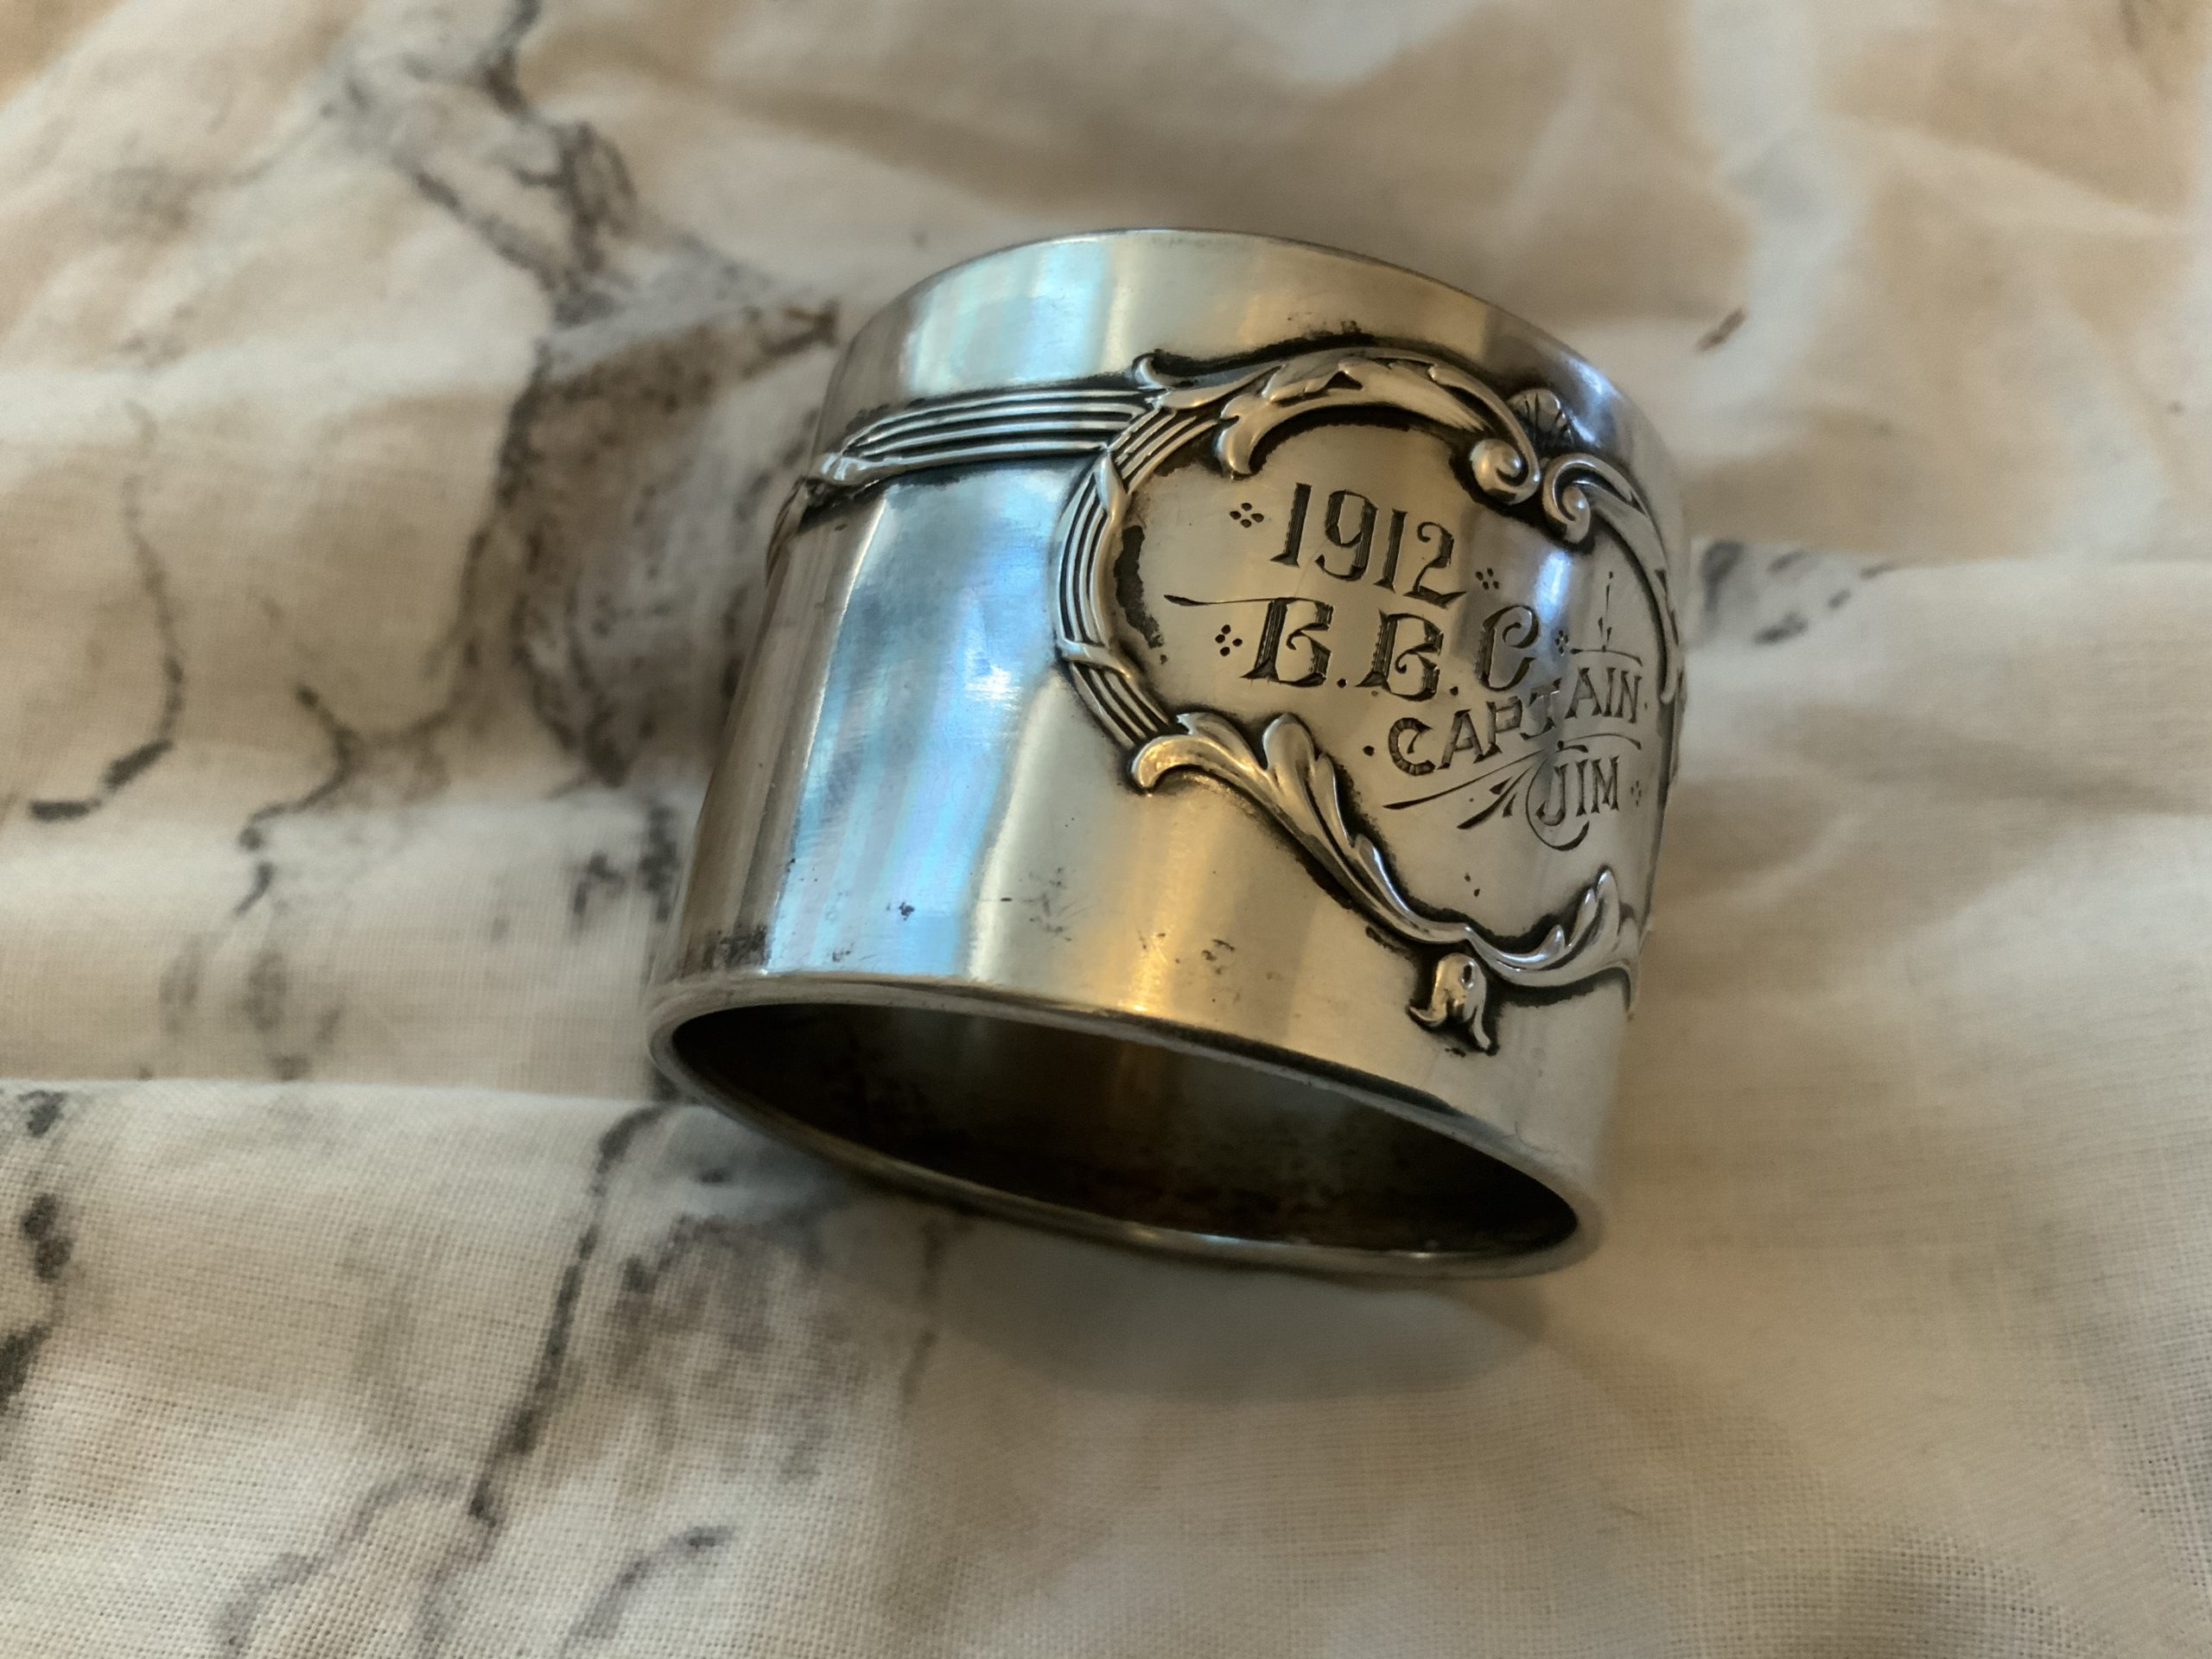 Bulldog club founding members napkin ring ?